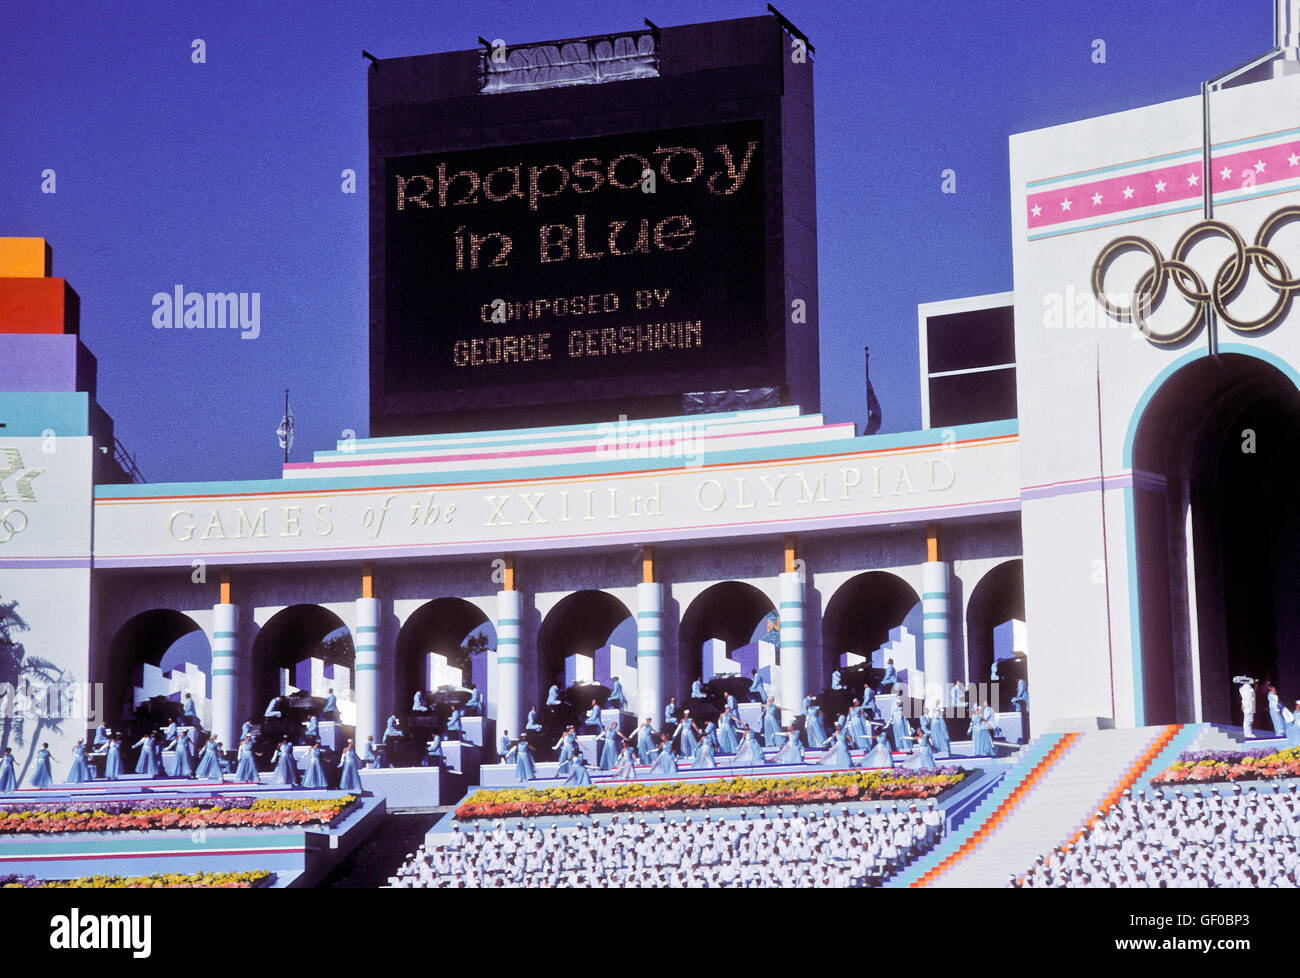 Musical performances during opening ceremonies at 1984 Olympic Games in Los Angeles. - Stock Image